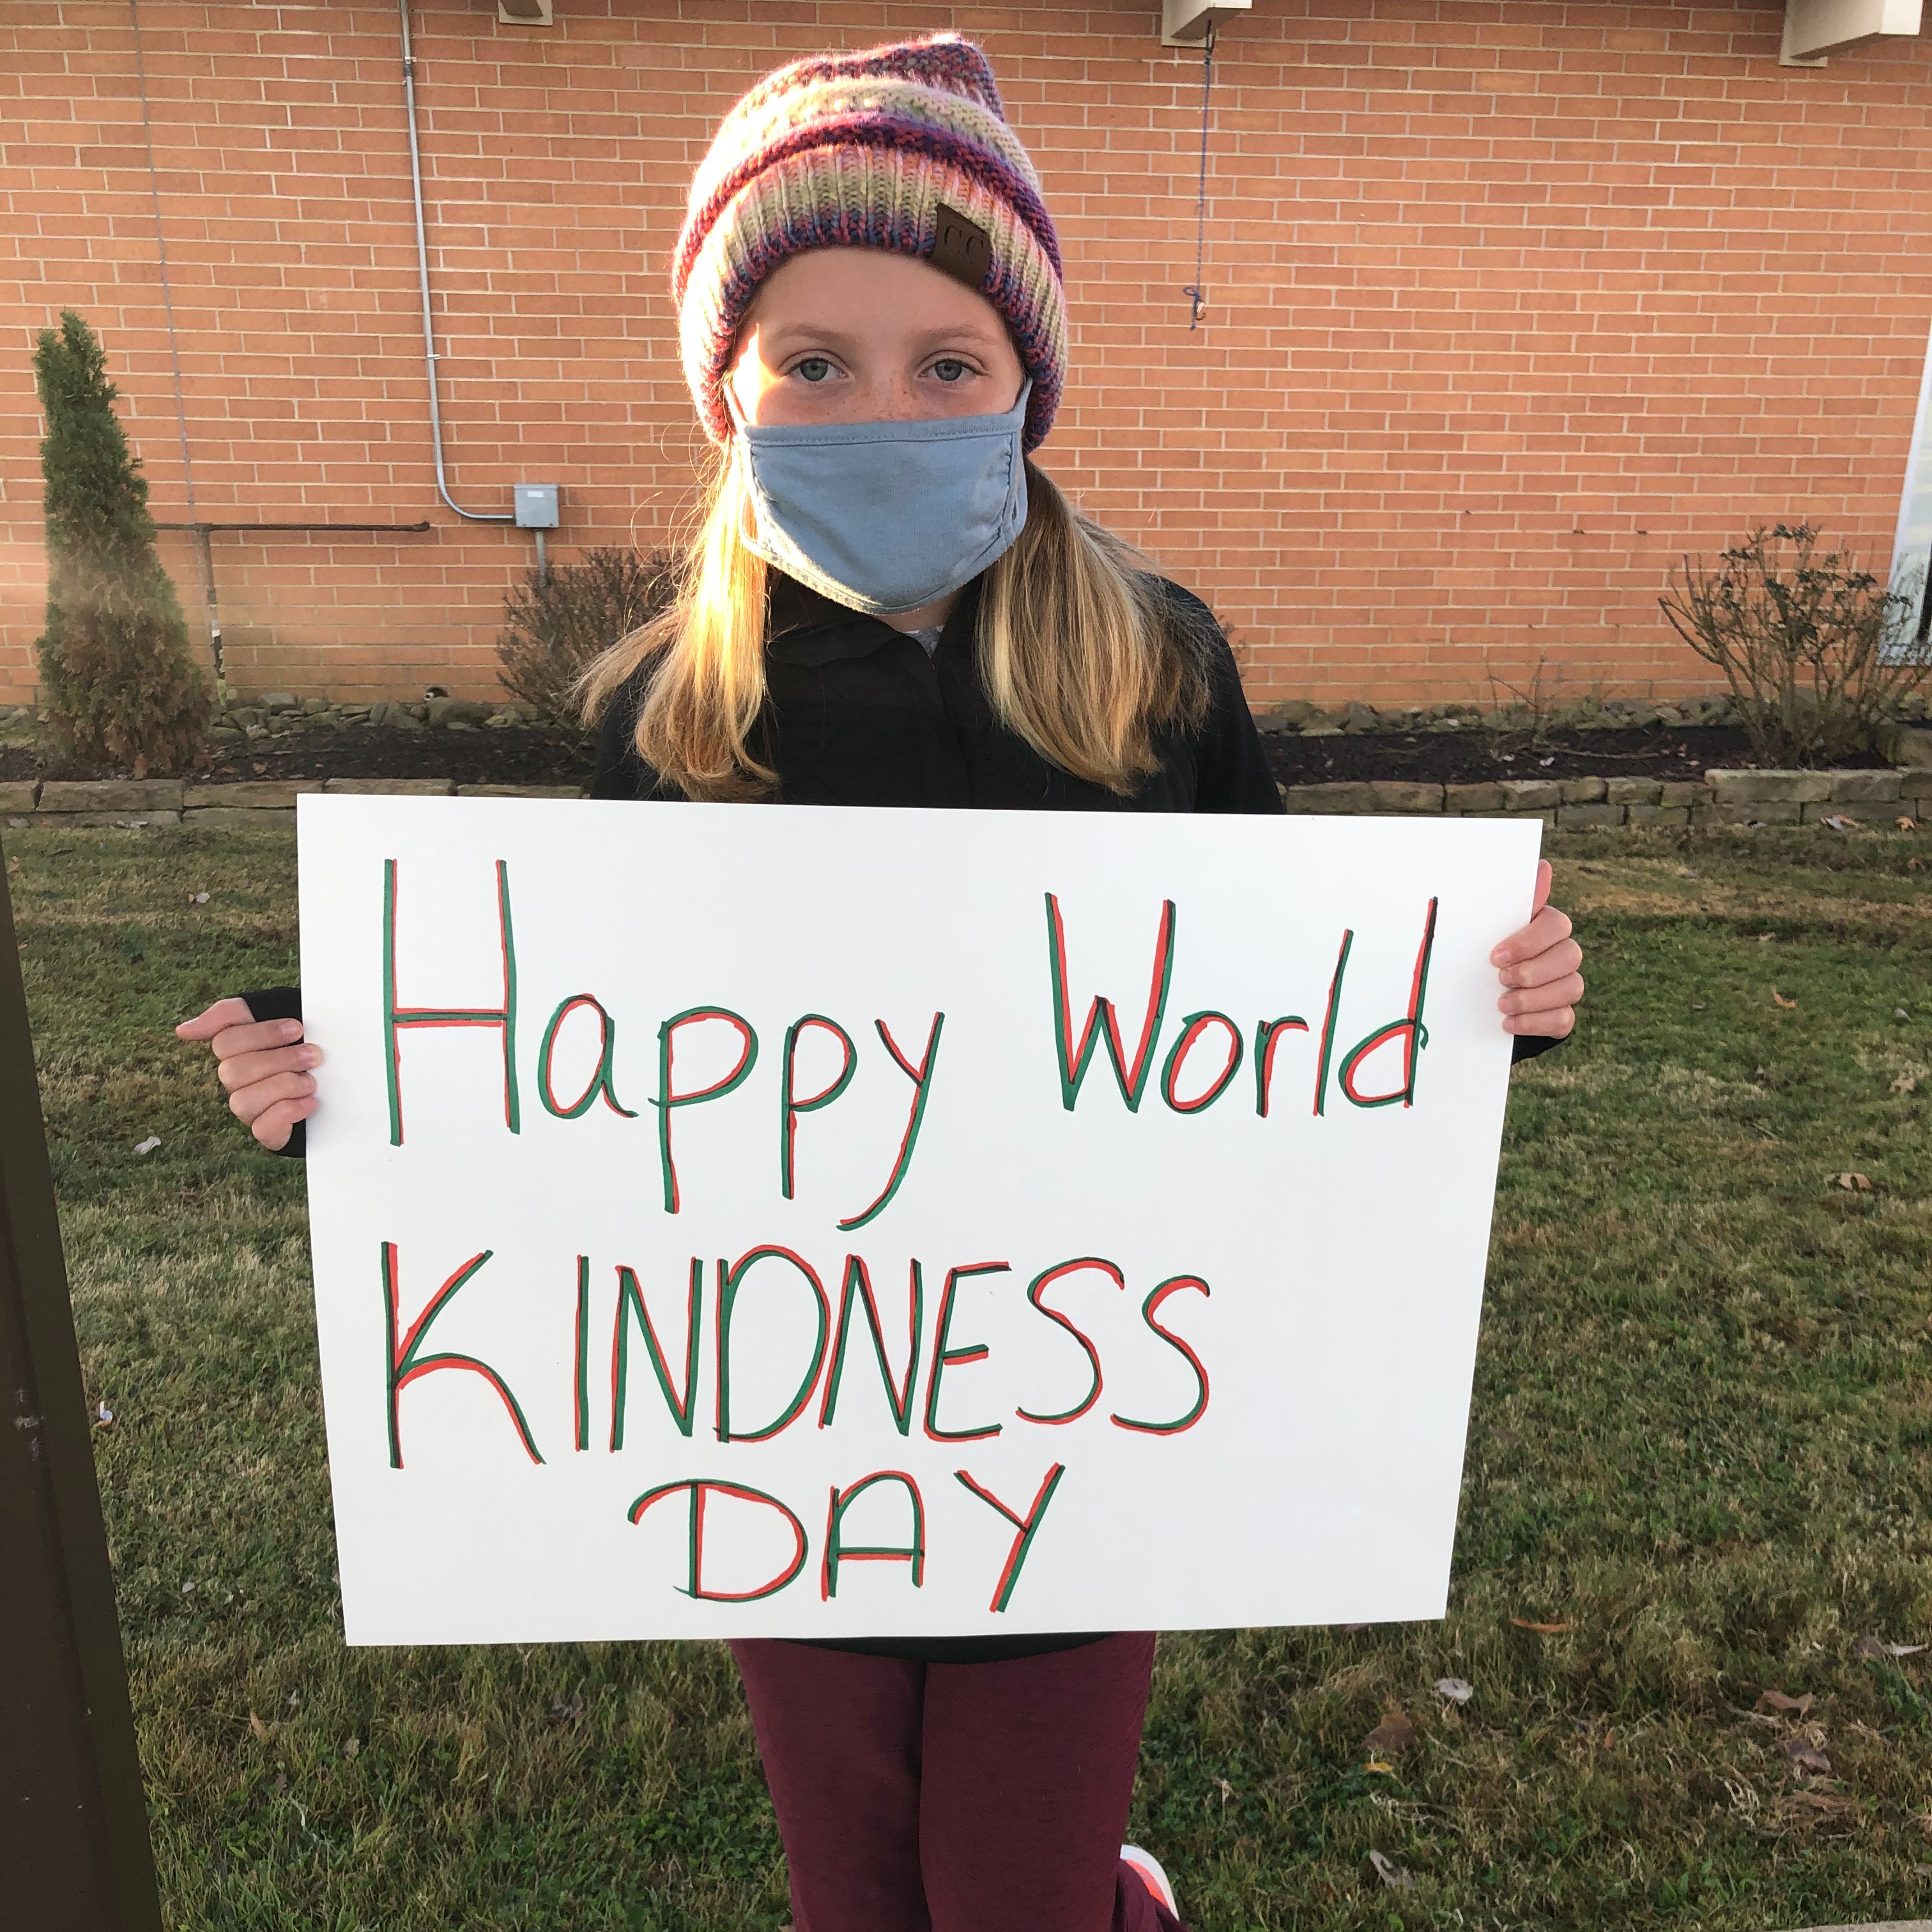 Student Kindness Day